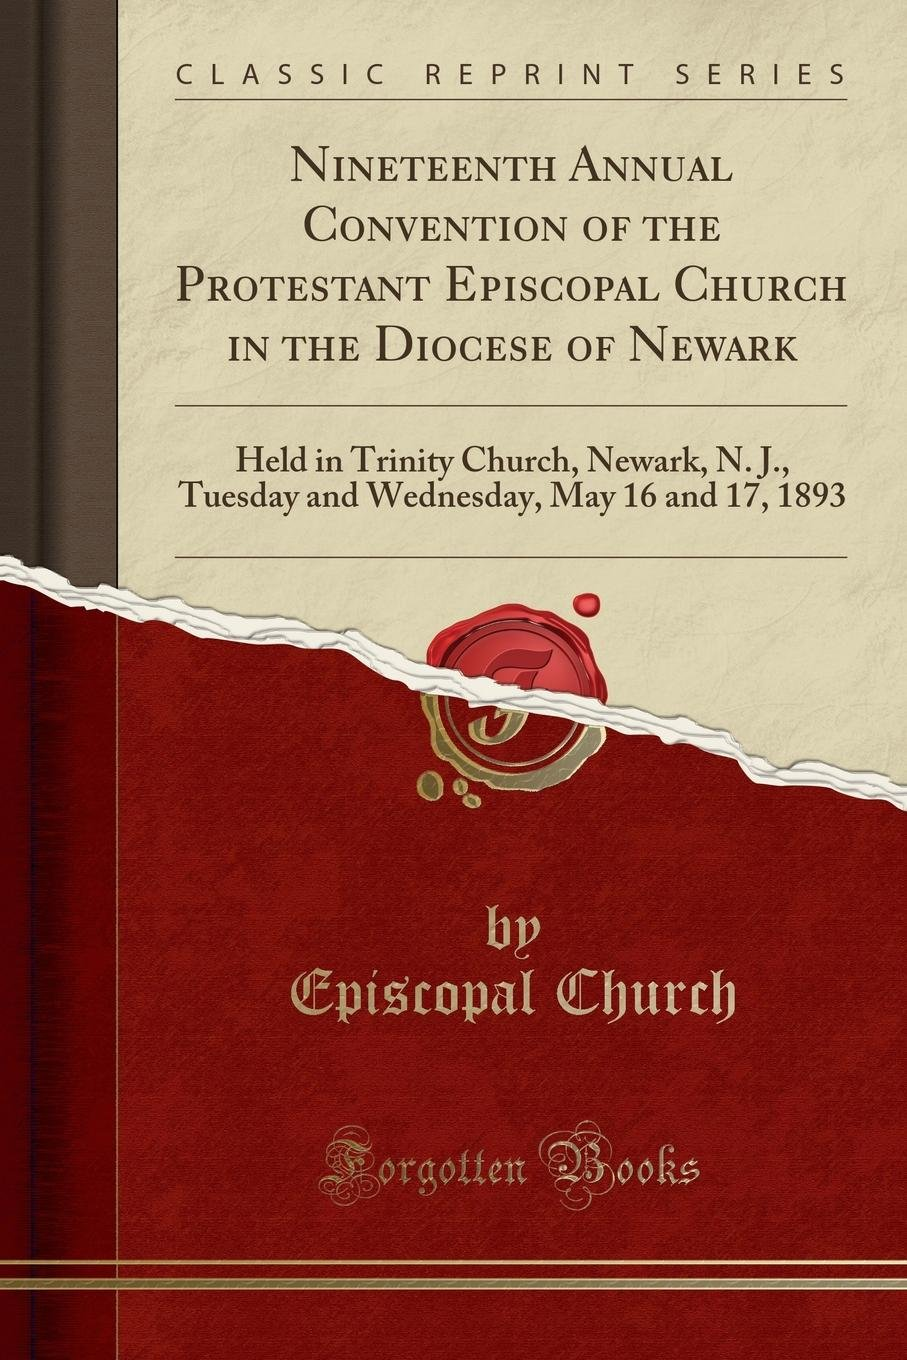 Nineteenth Annual Convention of the Protestant Episcopal Church in the Diocese of Newark: Held in Trinity Church, Newark, N. J., Tuesday and Wednesday, May 16 and 17, 1893 (Classic Reprint) pdf epub